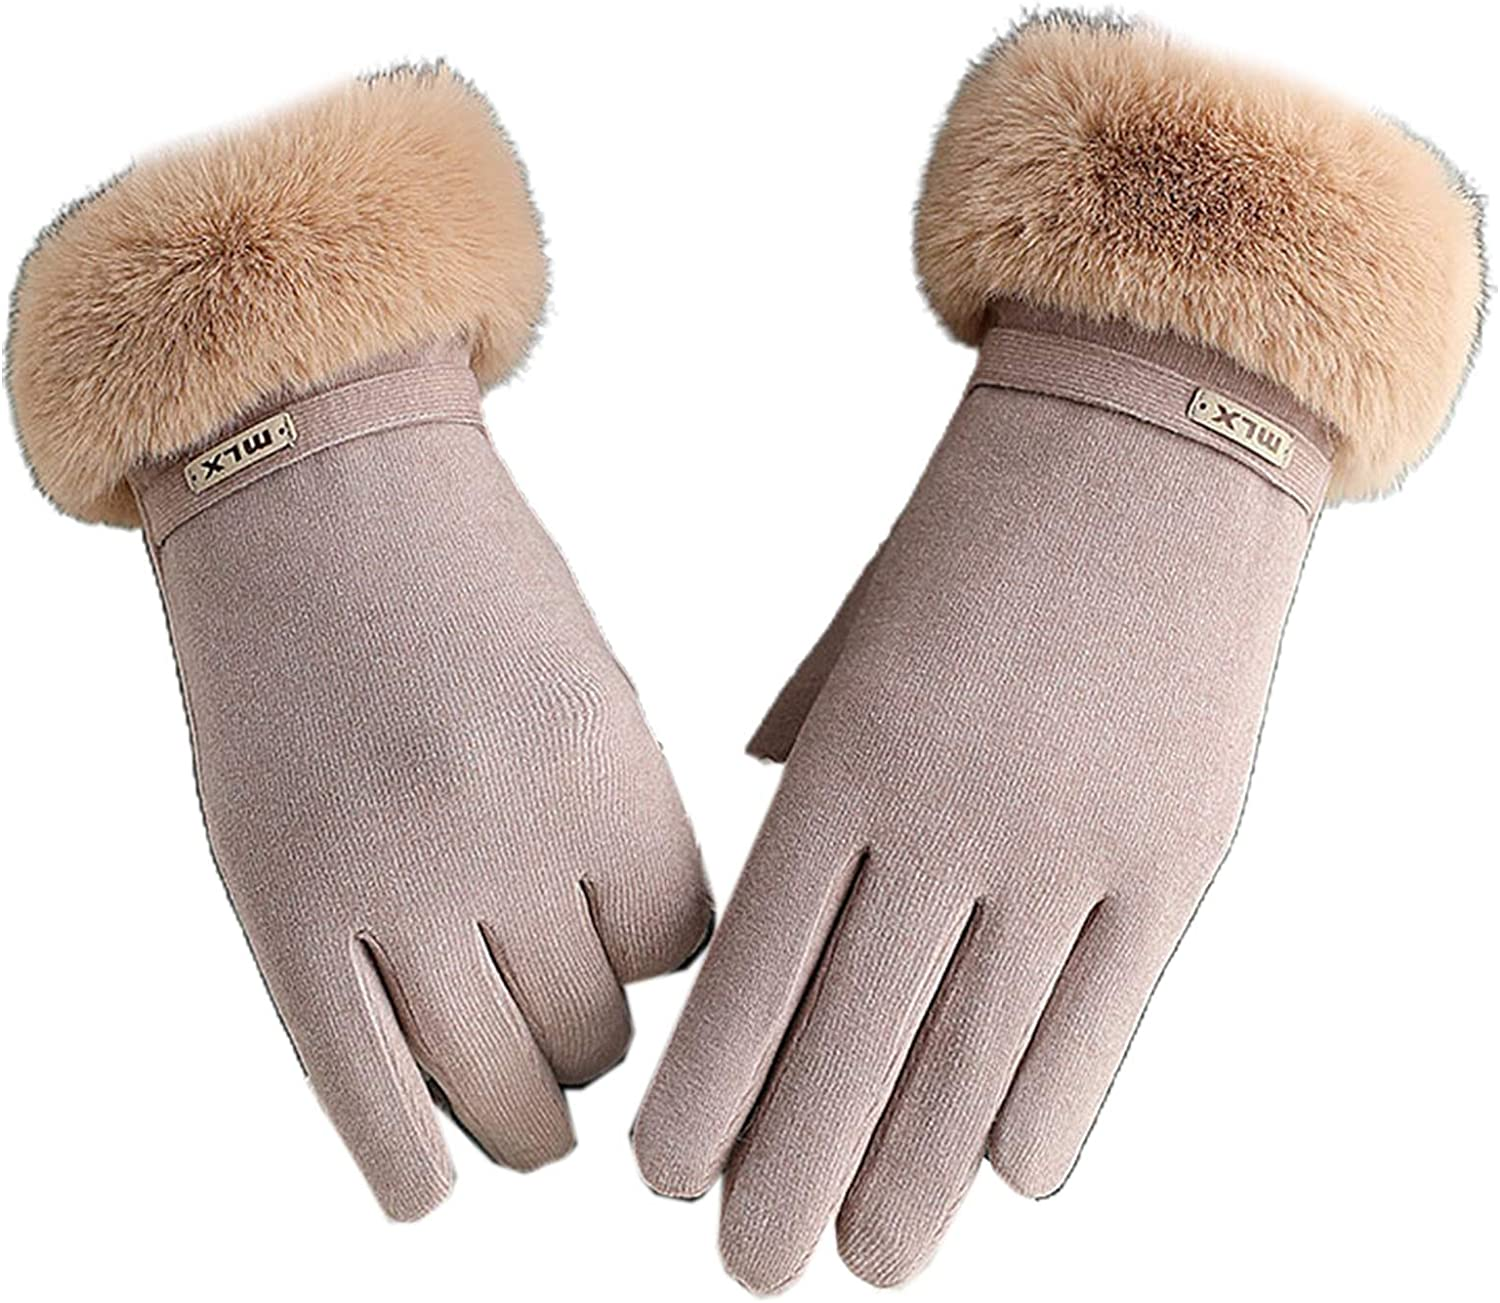 Women Winter Gloves Warm Thermal Full Finger Gloves Furry Cuff Plush Soft Lining Touchscreen Texting Mittens